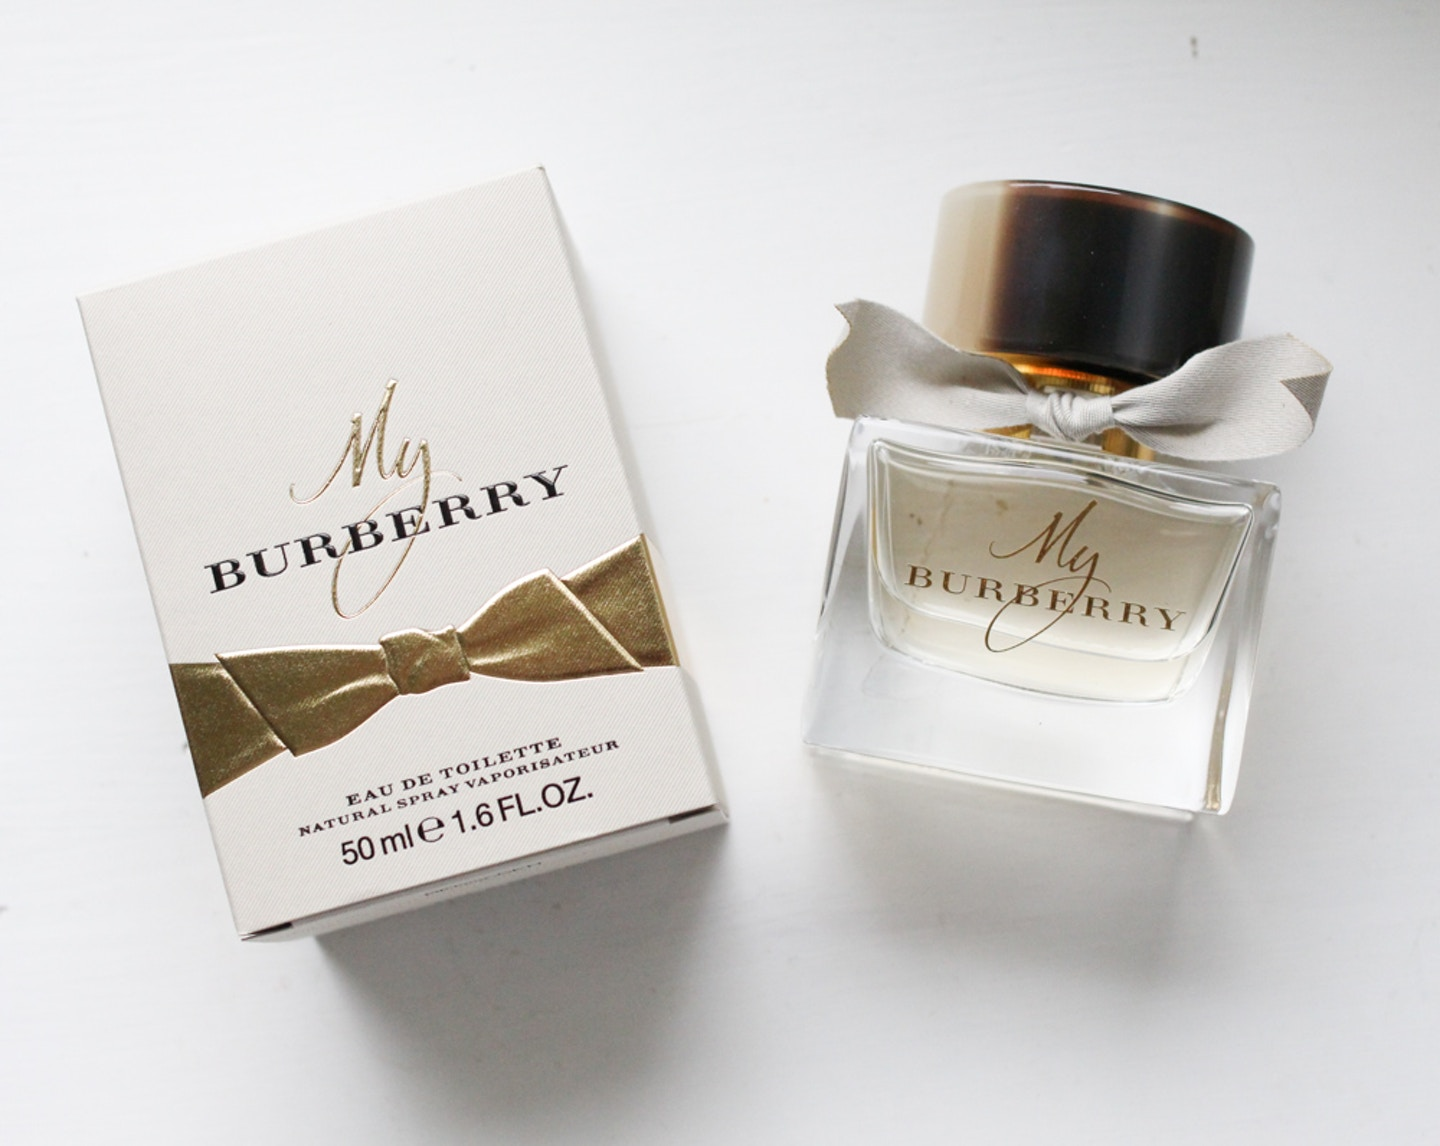 Burberry Beauty review